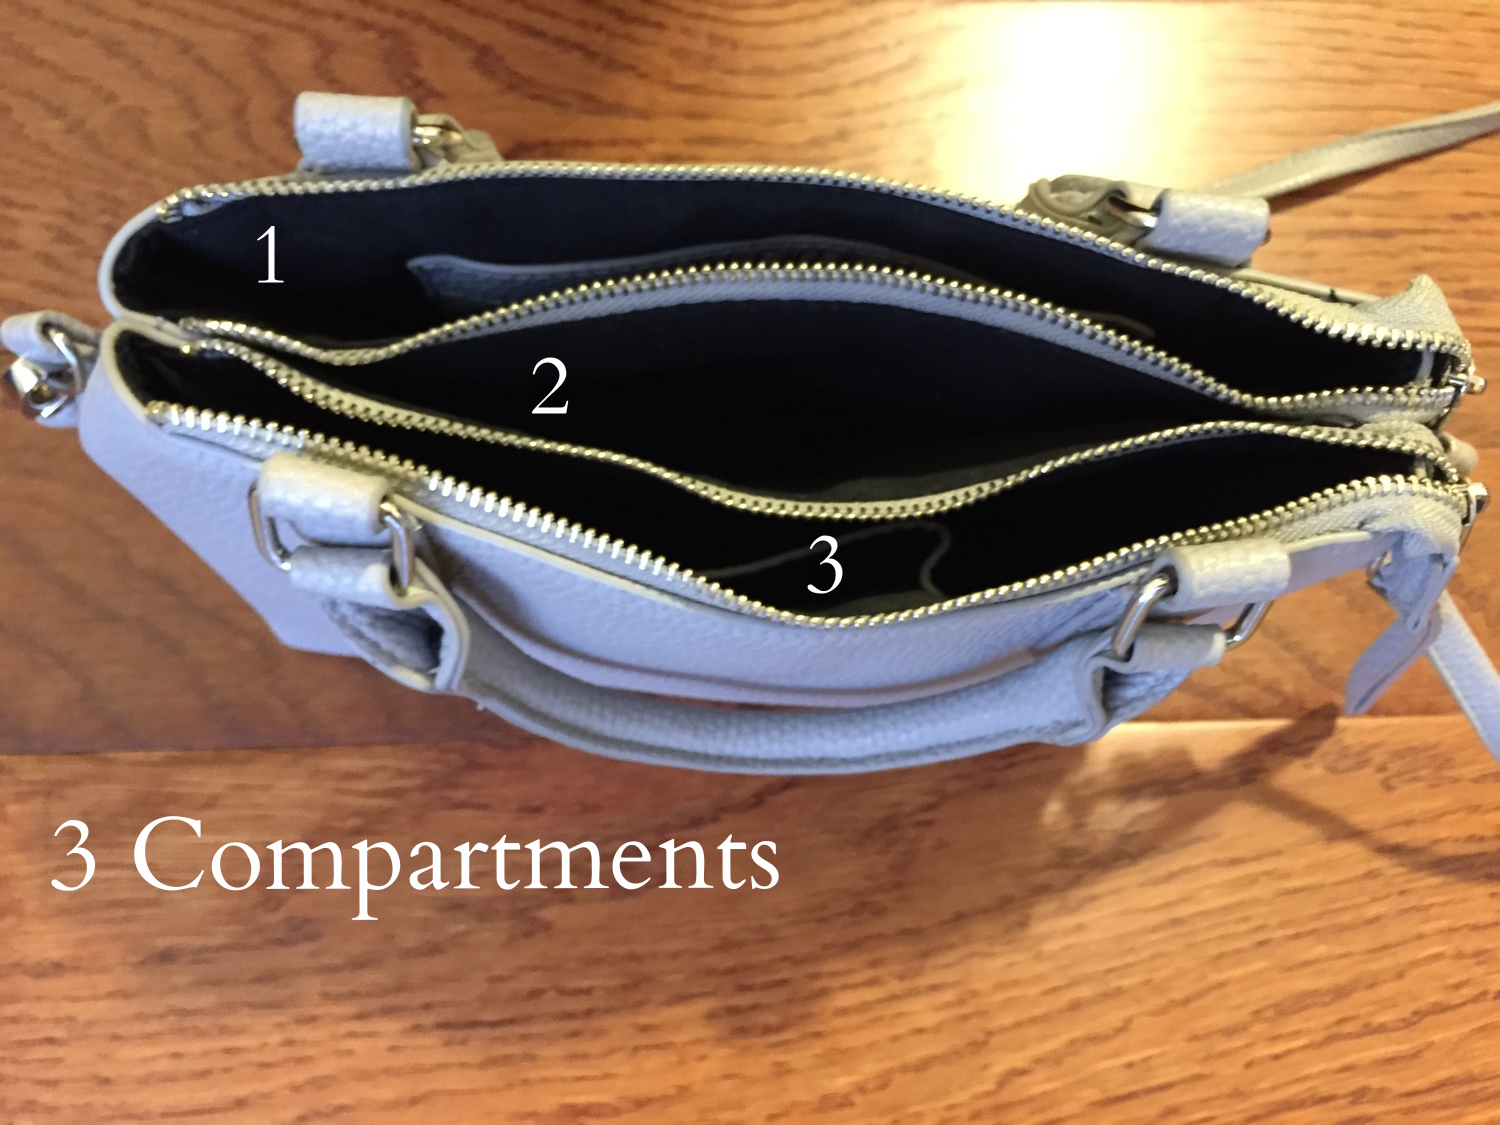 Narrow down what you can carry in your bag by looking at how many compartments it has